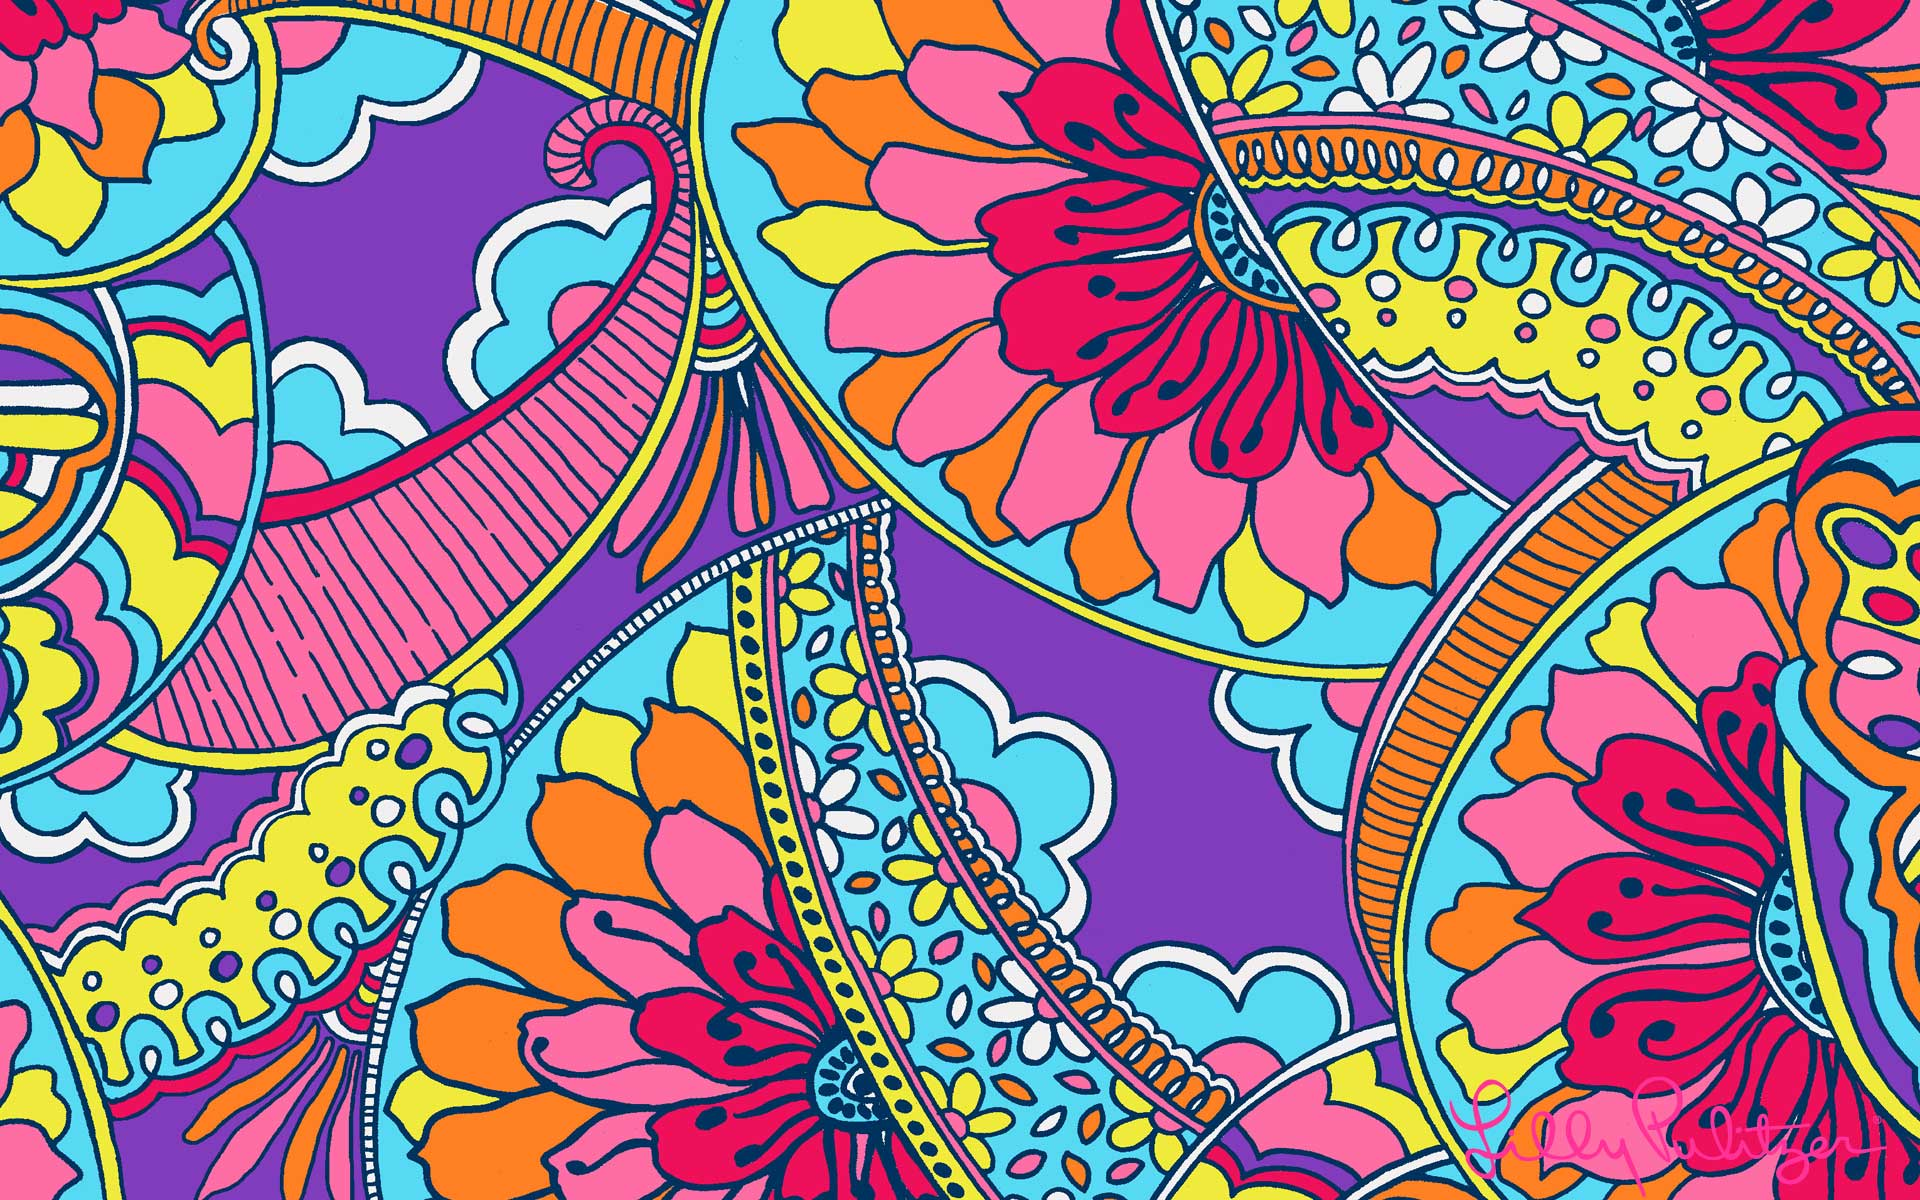 Colorful Desktop Lilly Pulitzer Wallpapers